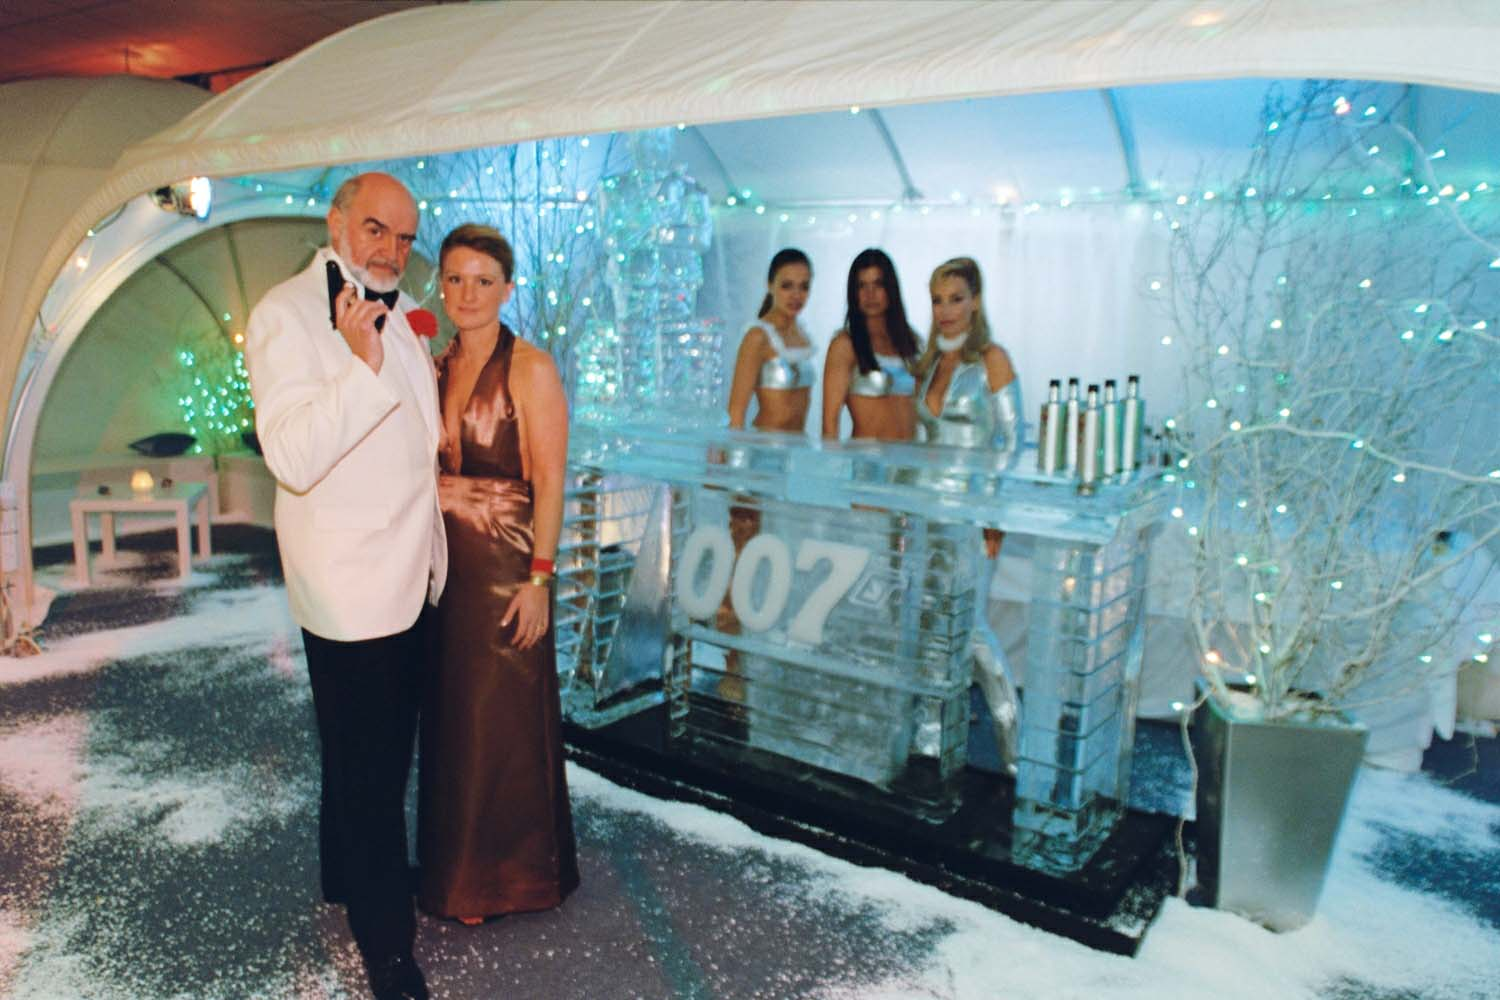 007, Bond Themed, Ice Bar